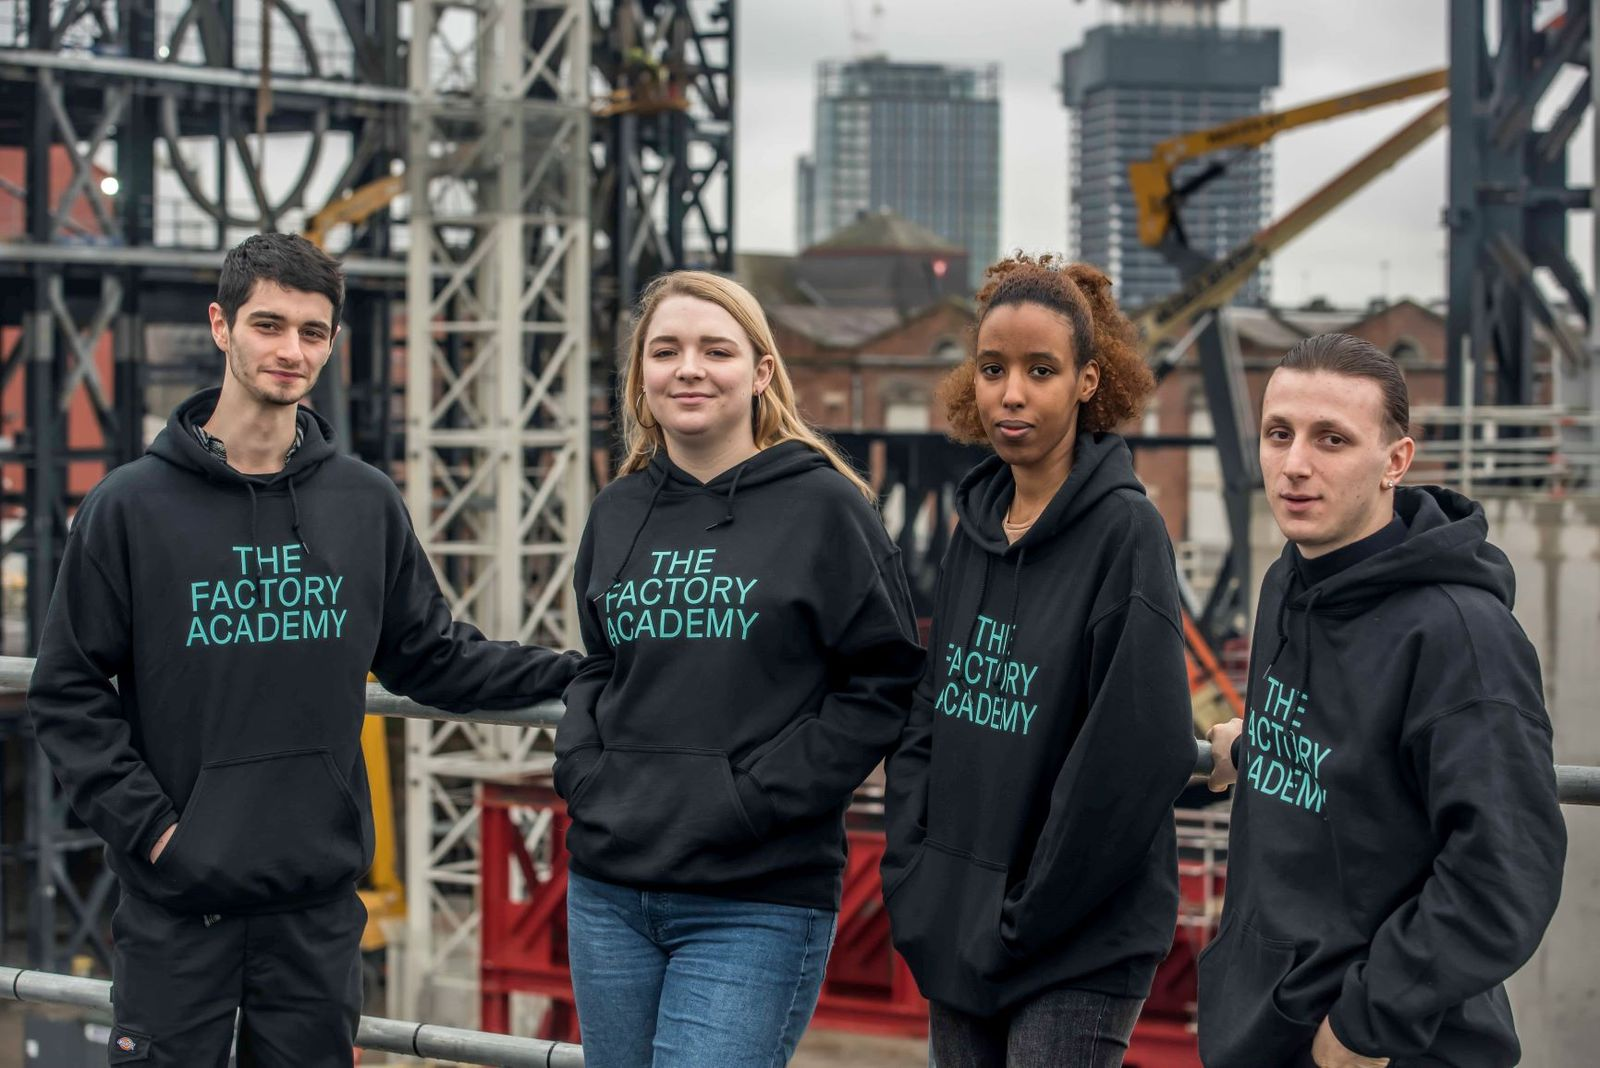 The Factory Academy provides skills and training programmes in creative industries forpeople across the region.